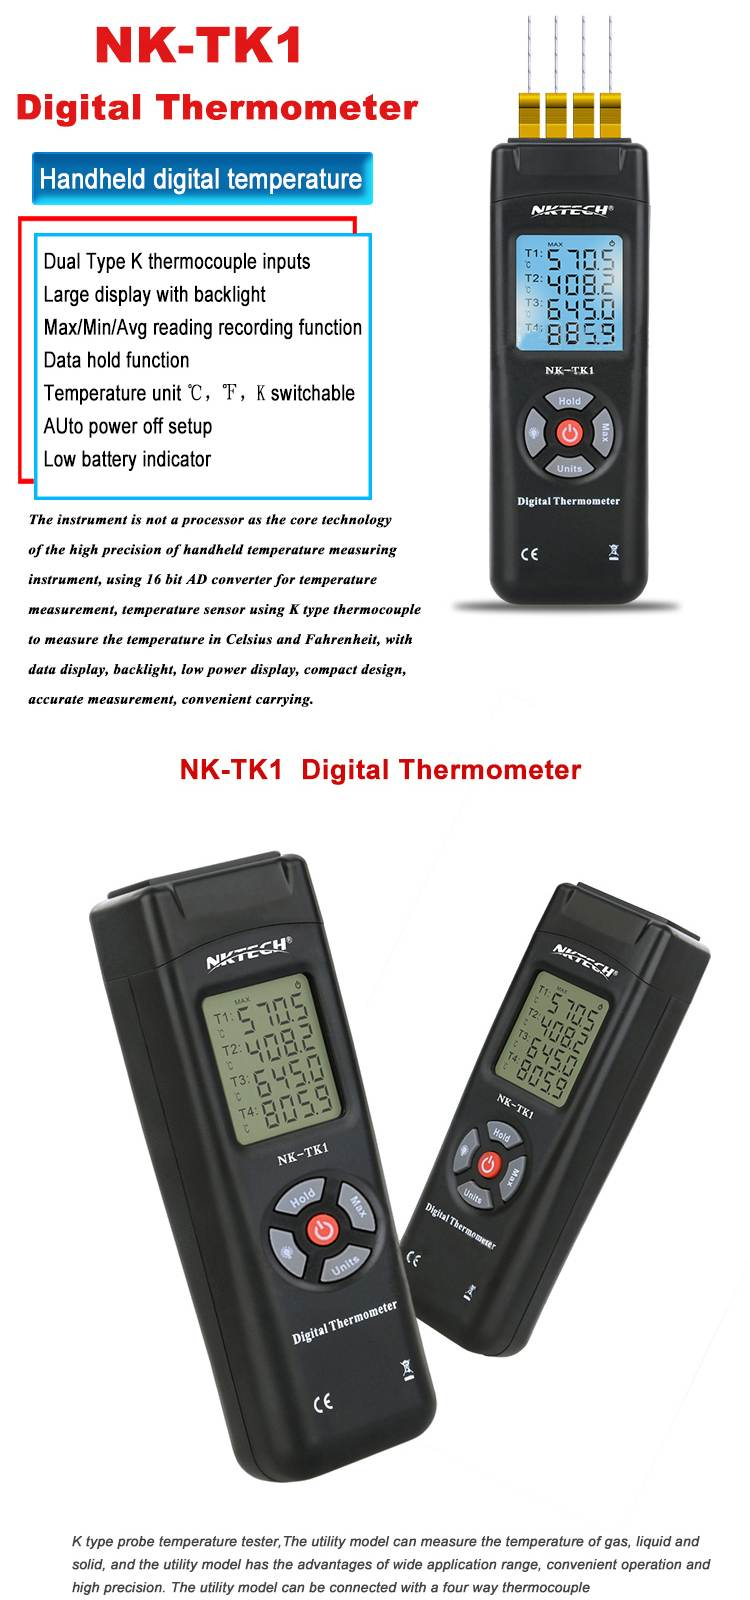 NK-TK1 4 Channel Digital Thermometer Temperature Meter Handheld Thermometer K Type Thermocouple Sensor for Industury Instrument